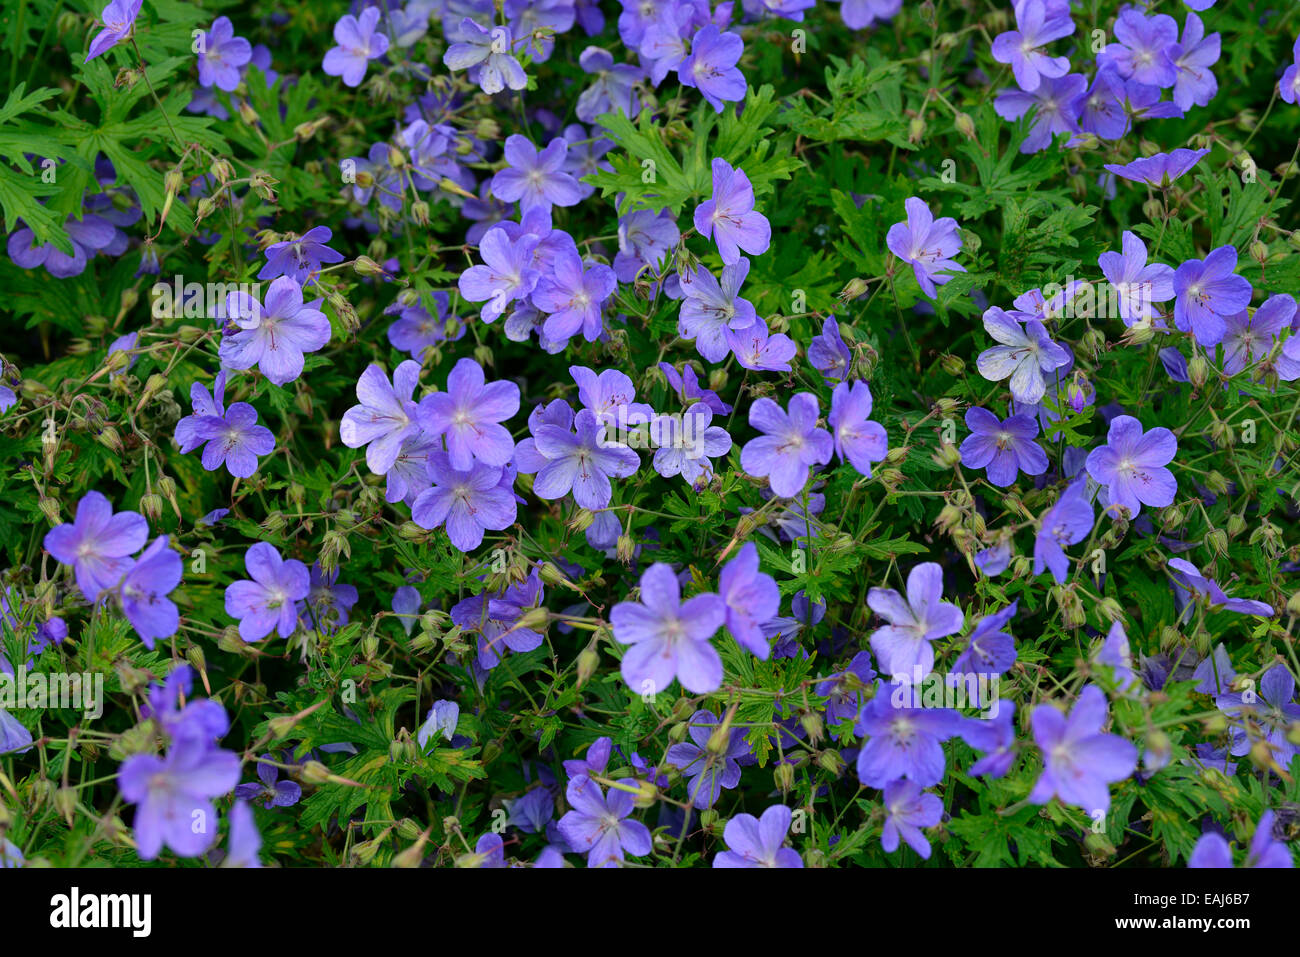 Geranium Pratense Johnsons Blue Flower Flowers Flowering Perennial